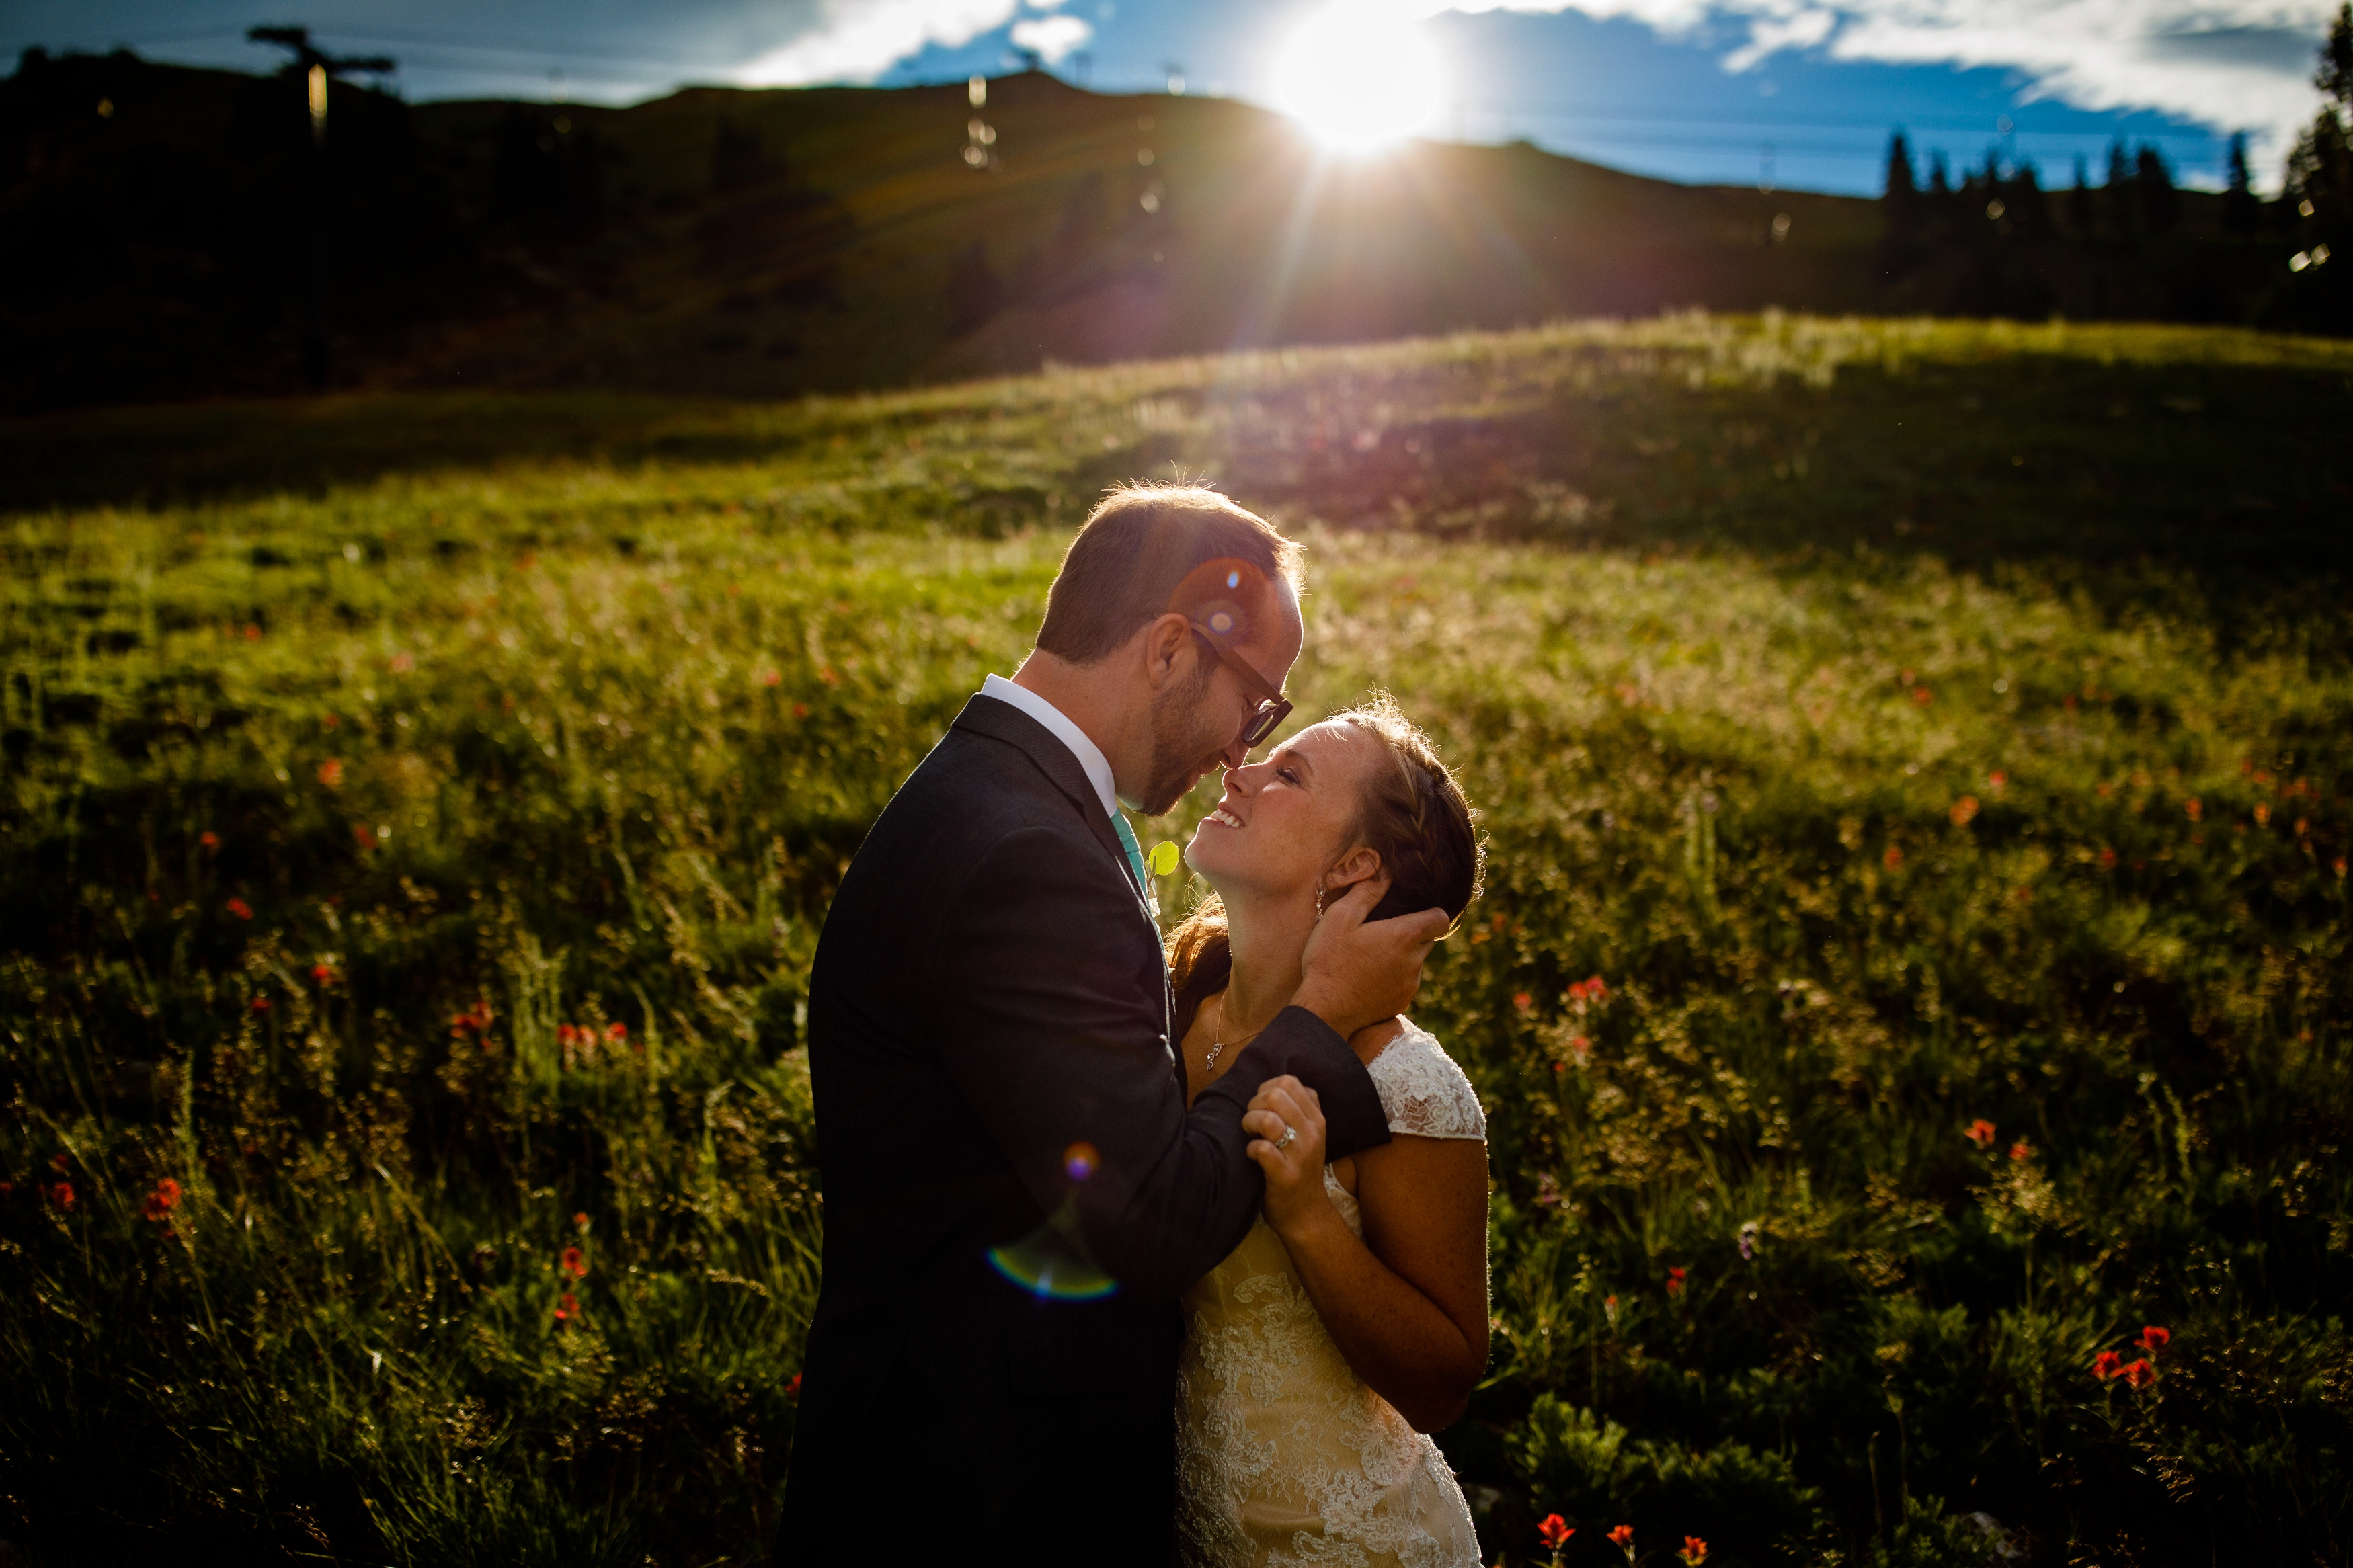 Sun drenched portrait of bride & groom after their wedding ceremony.